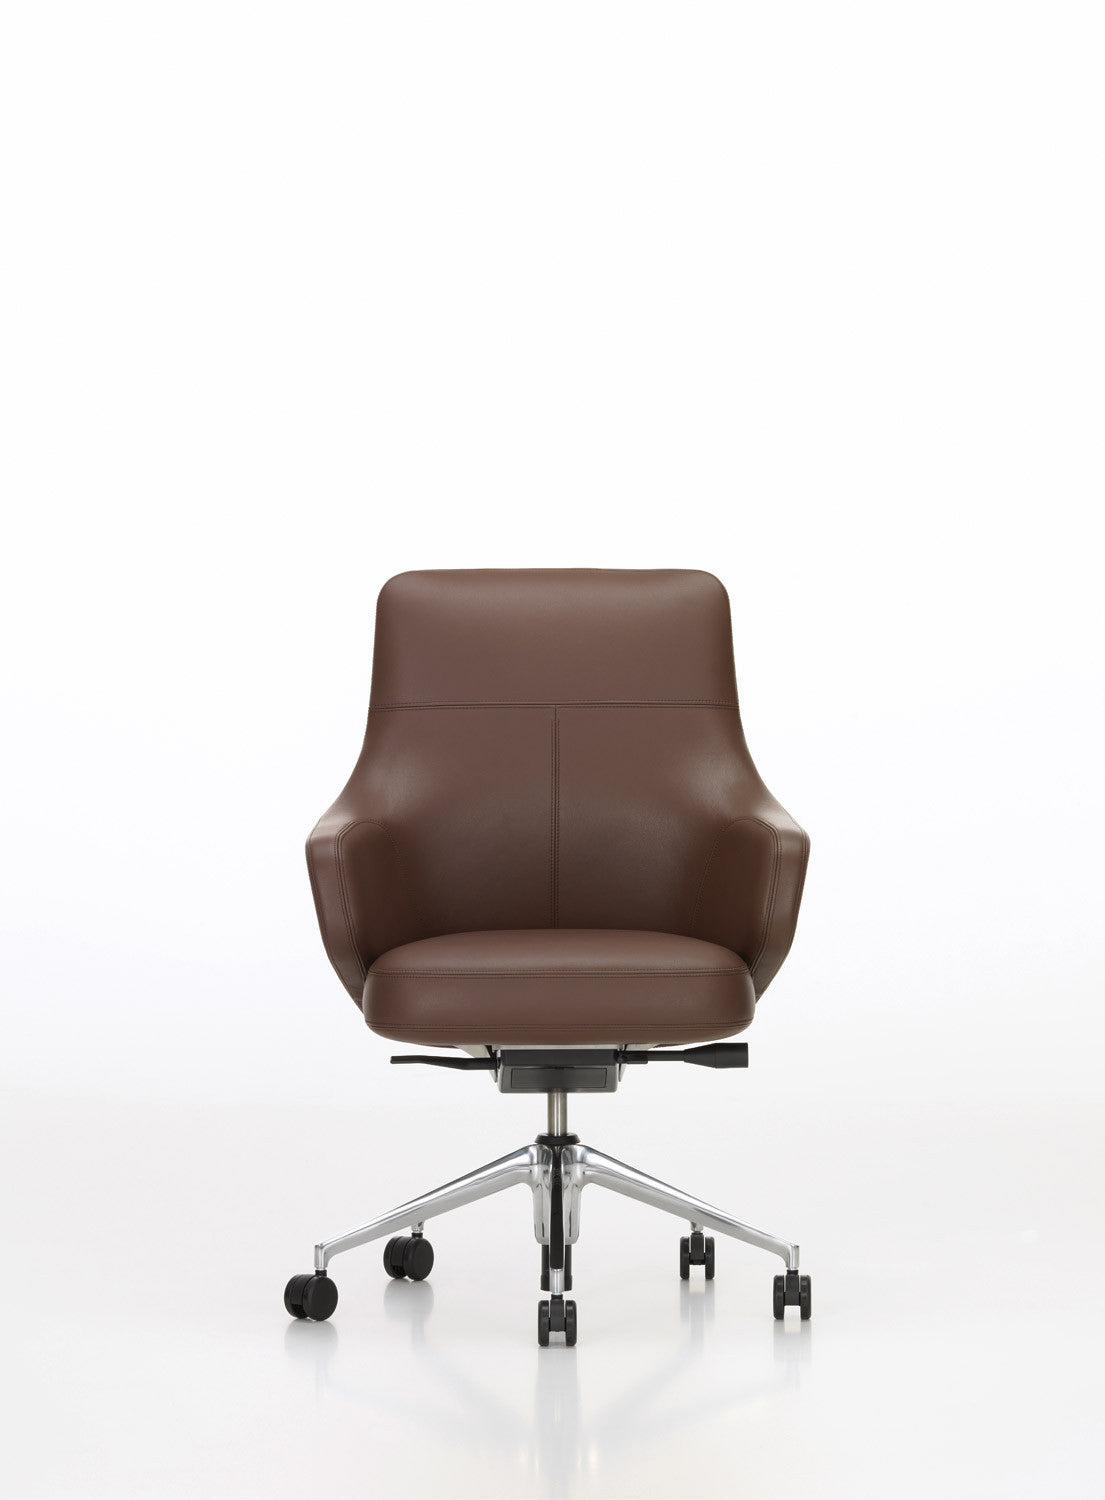 Fine Grand Executive Lowback Chair Creativecarmelina Interior Chair Design Creativecarmelinacom